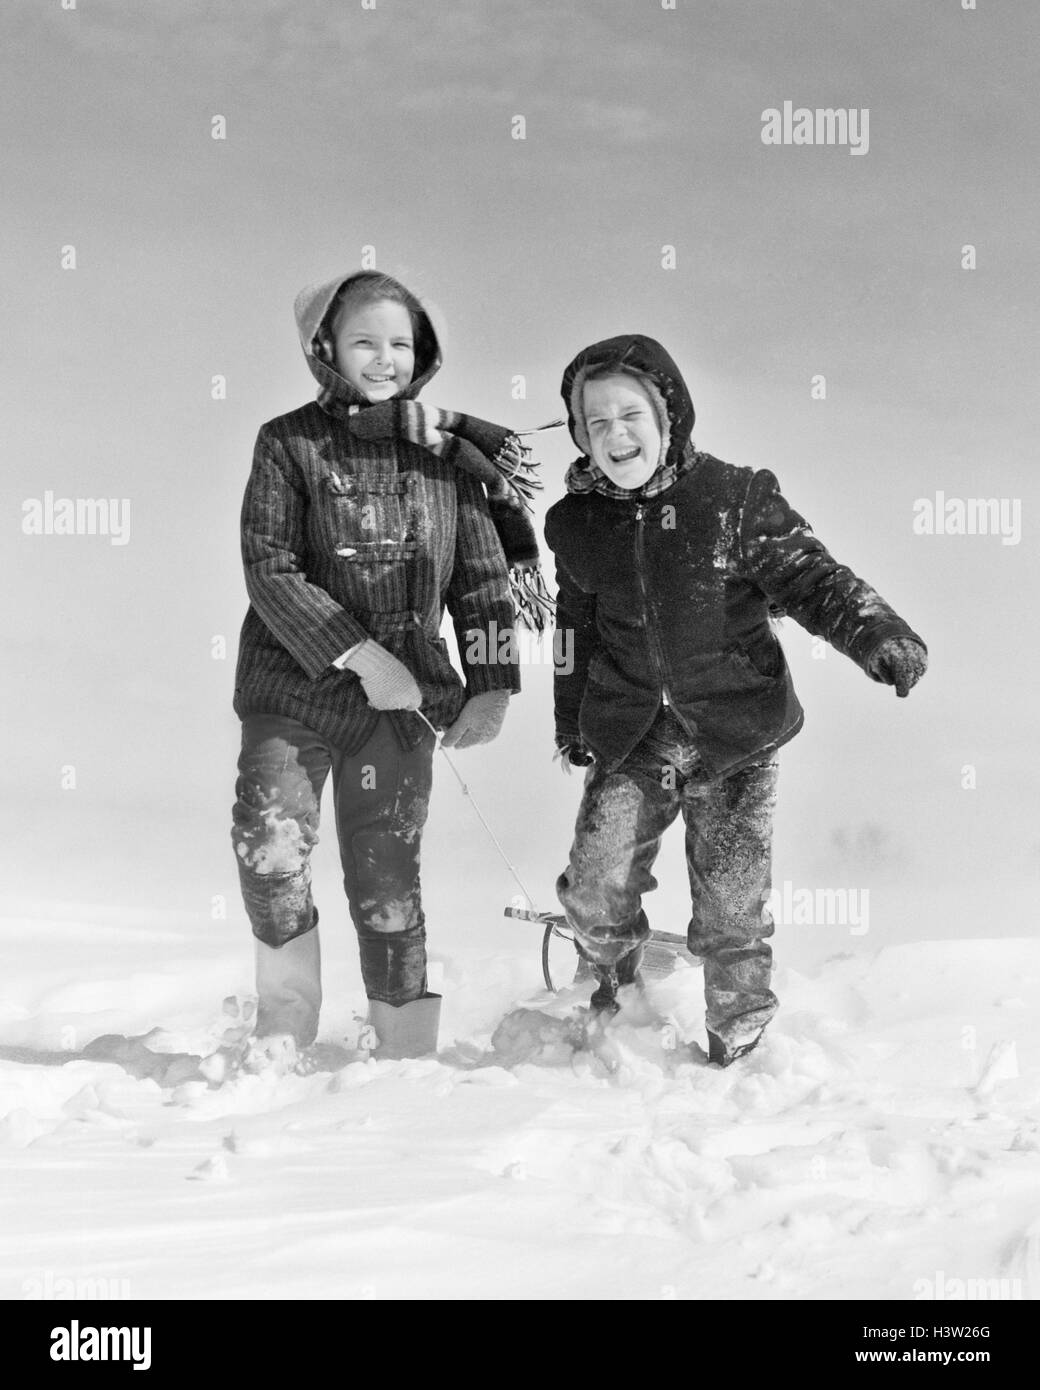 1950s 1960s SMILING BOY GIRL PULLING SLED IN WINTER SNOW - Stock Image